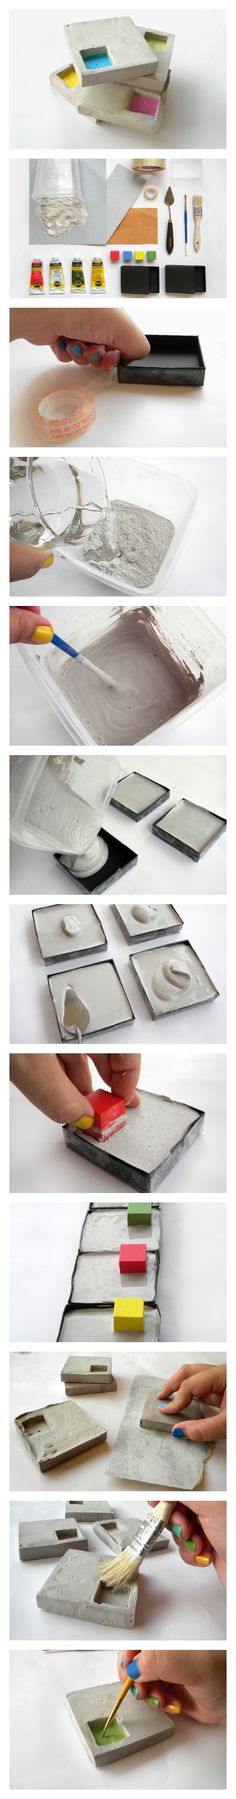 cement geo coasters; add felt or silicon bumpers underneath to protect table surface